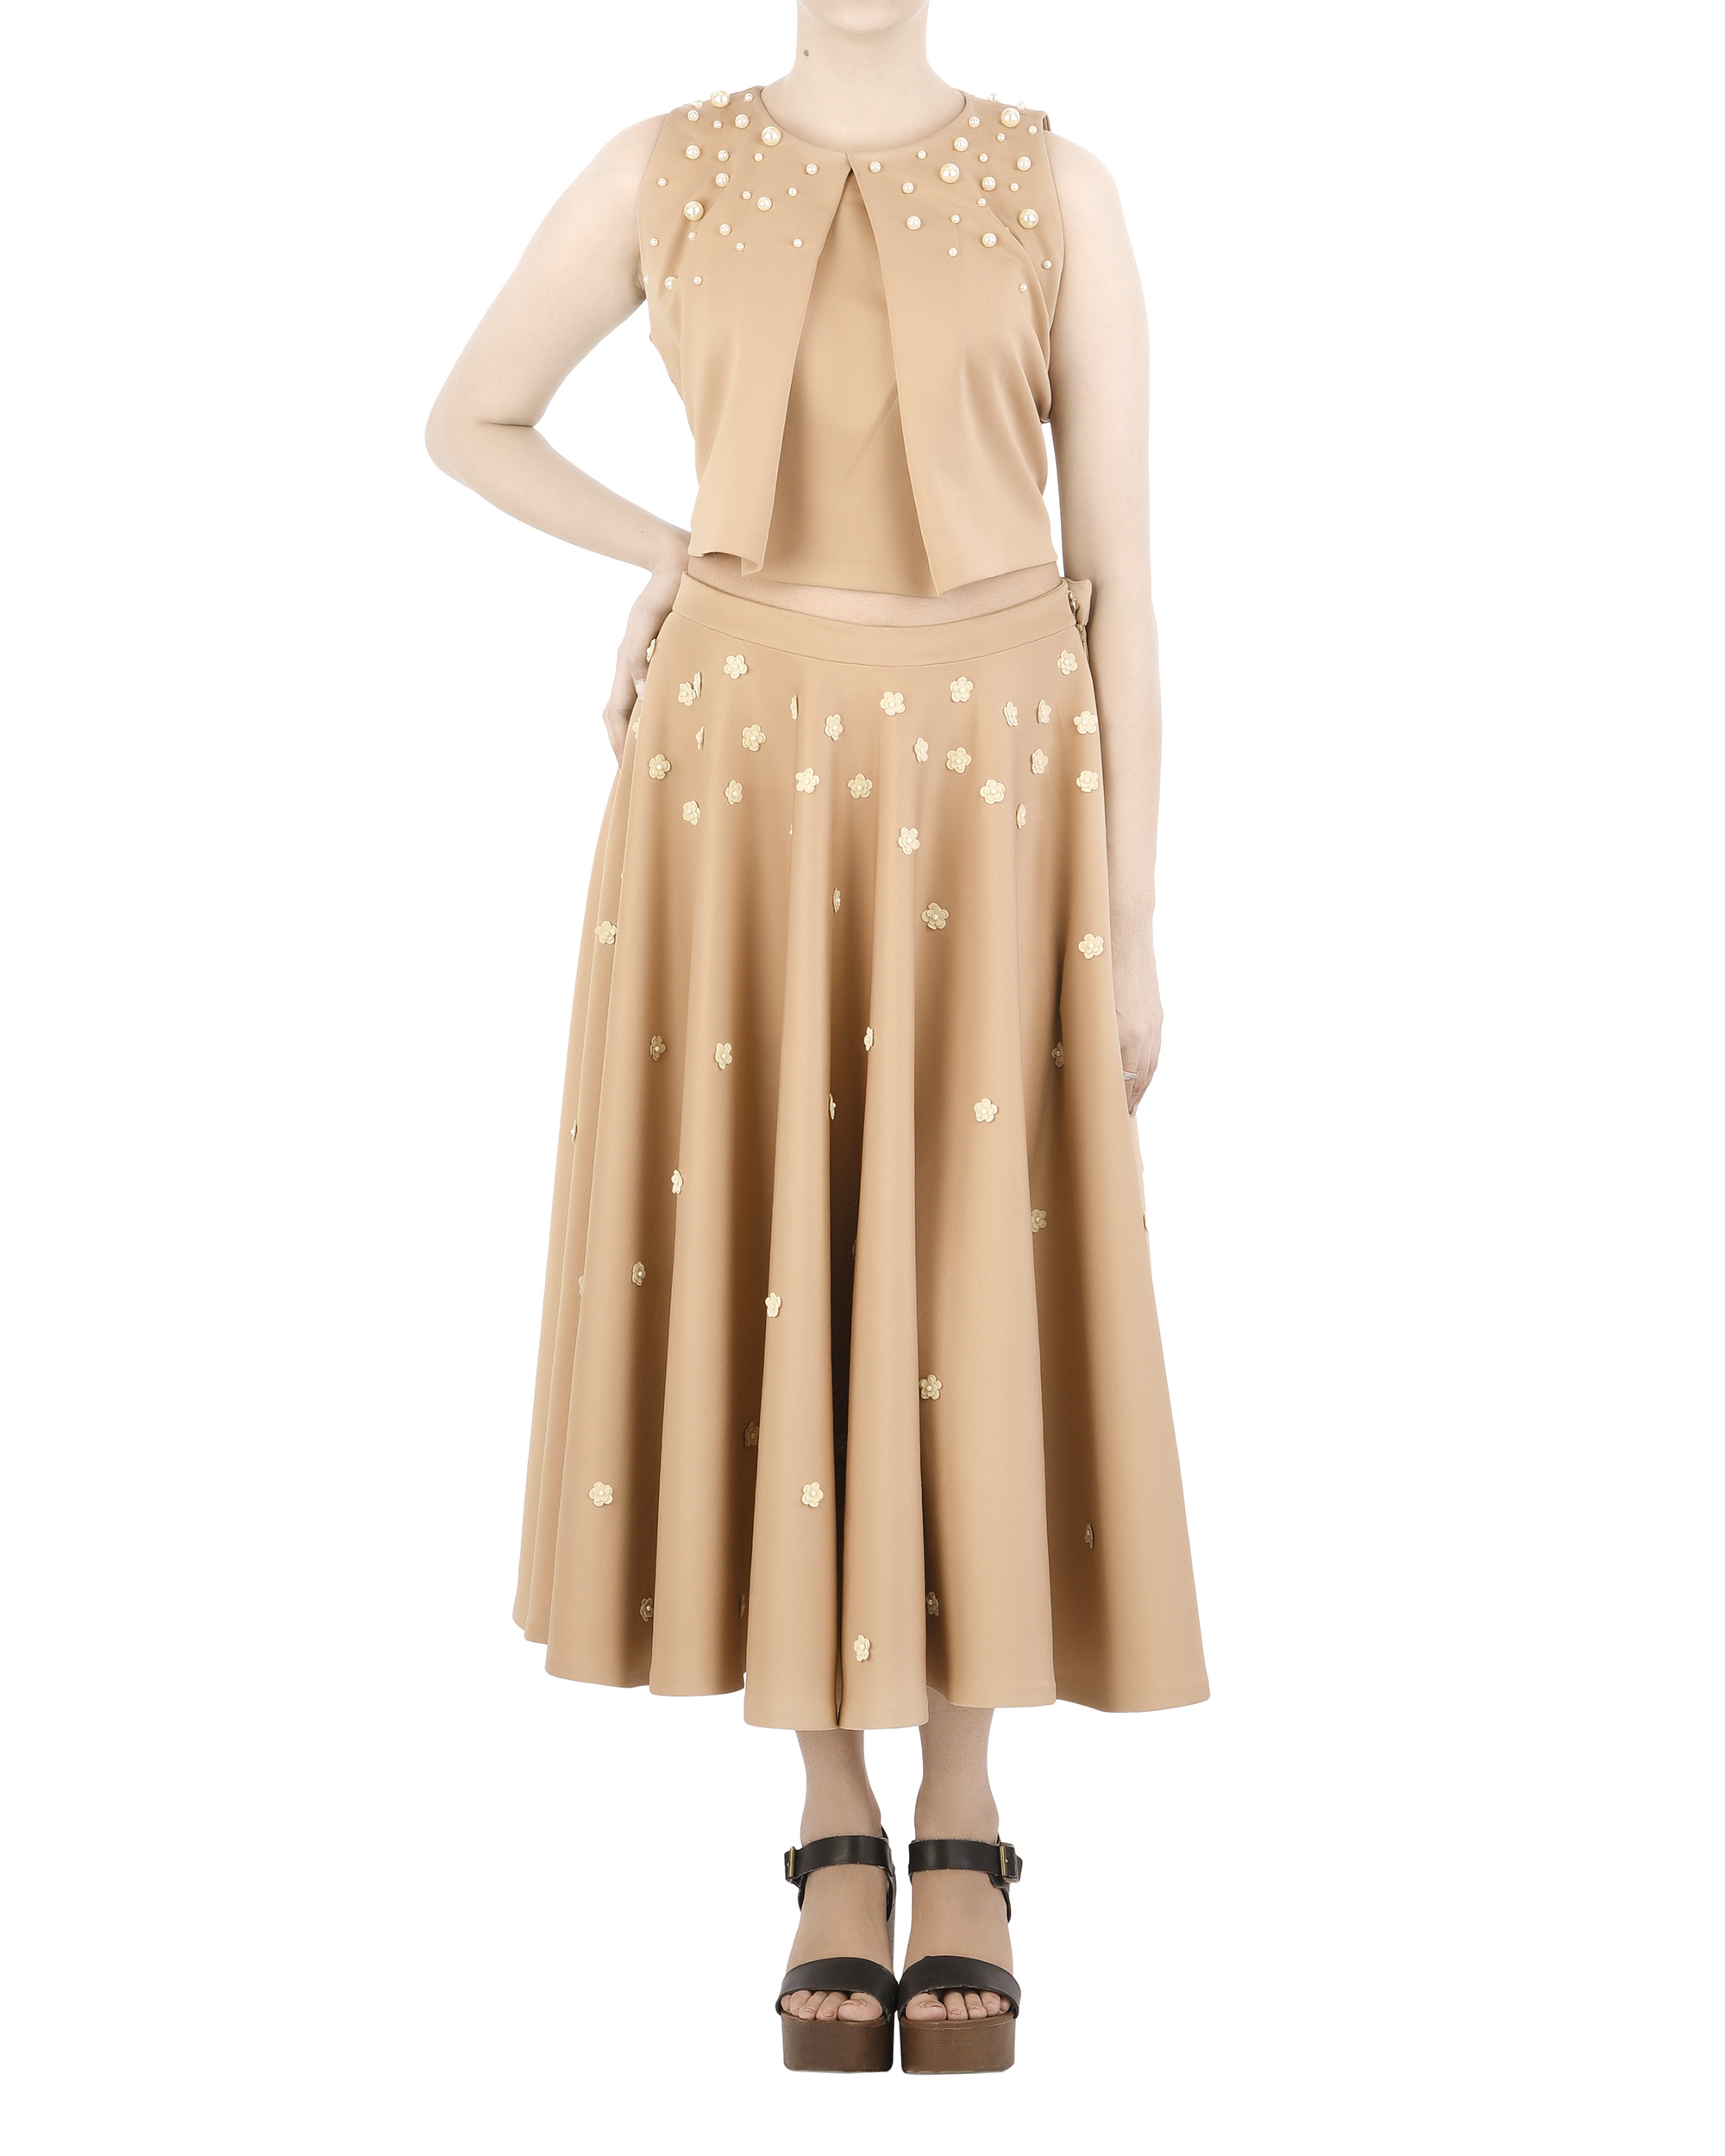 Neoprene circle skirt with floral applique by Archana Rao